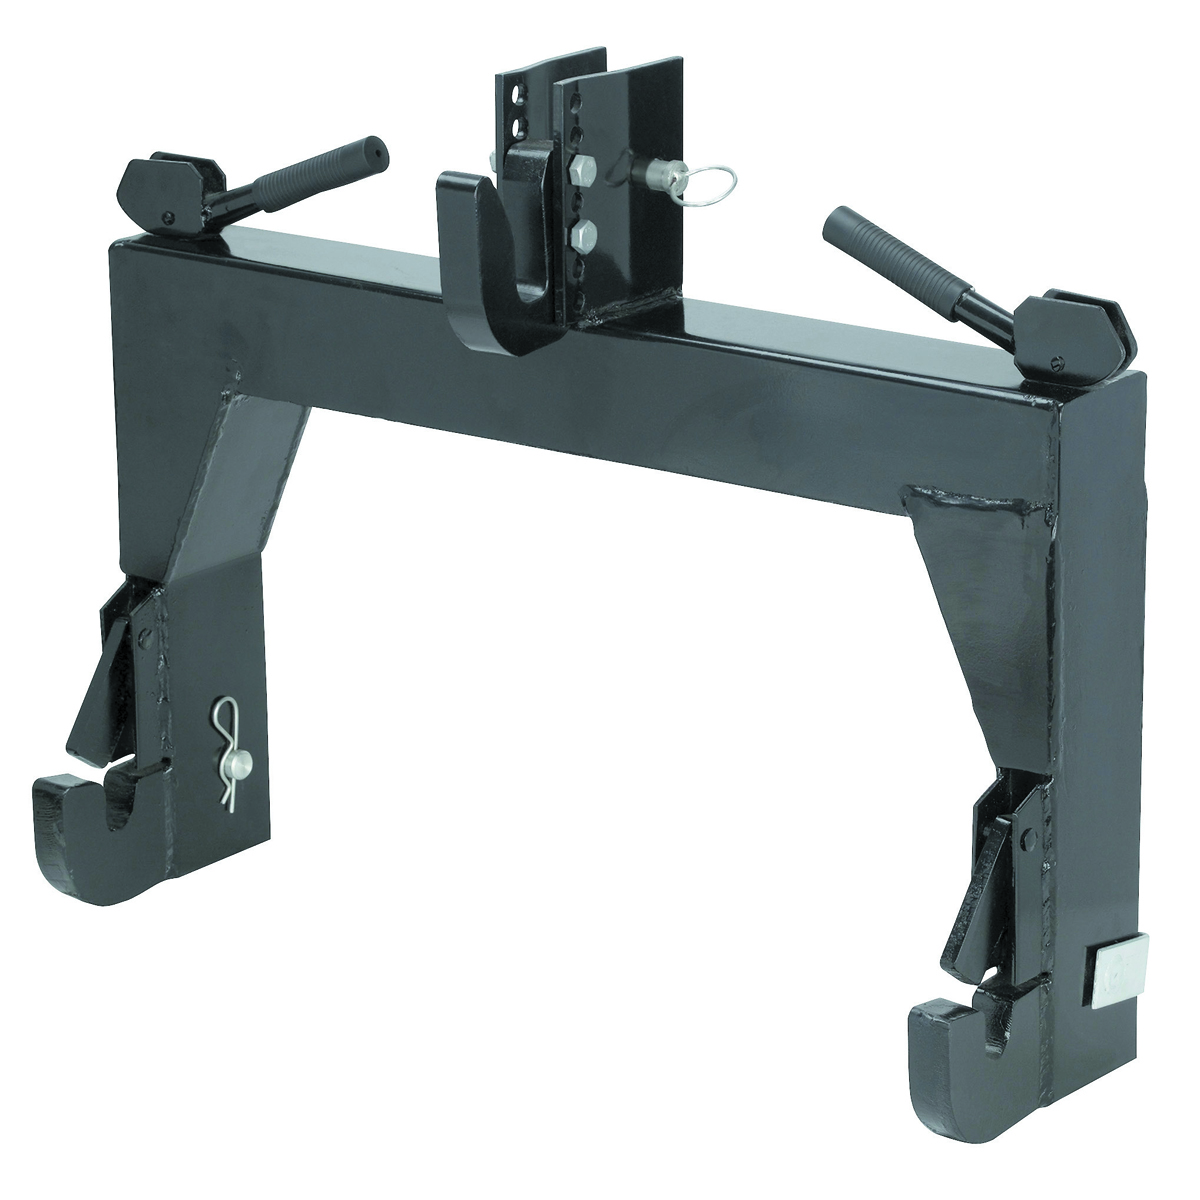 Three Point Hitch : Point quick hitch for tractors  quot clearance